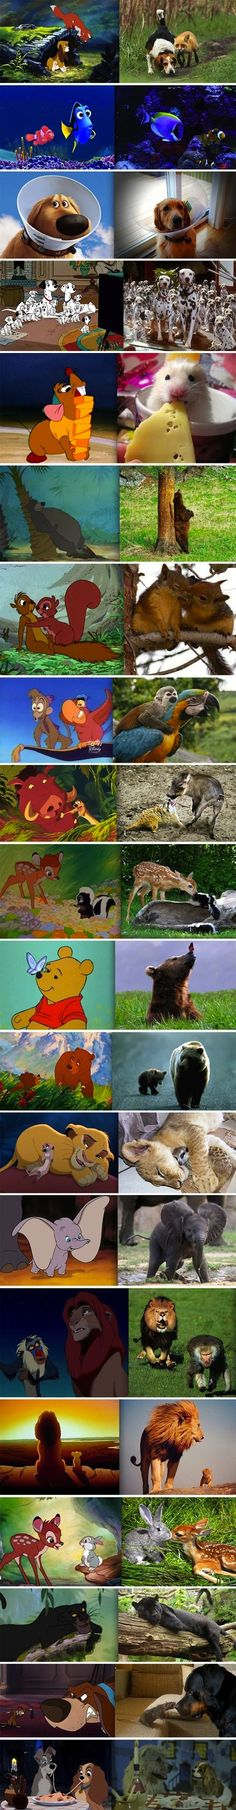 Disney Characters in Real Life. This is so cute! I love the elephant, but my mouse is way more adorable.